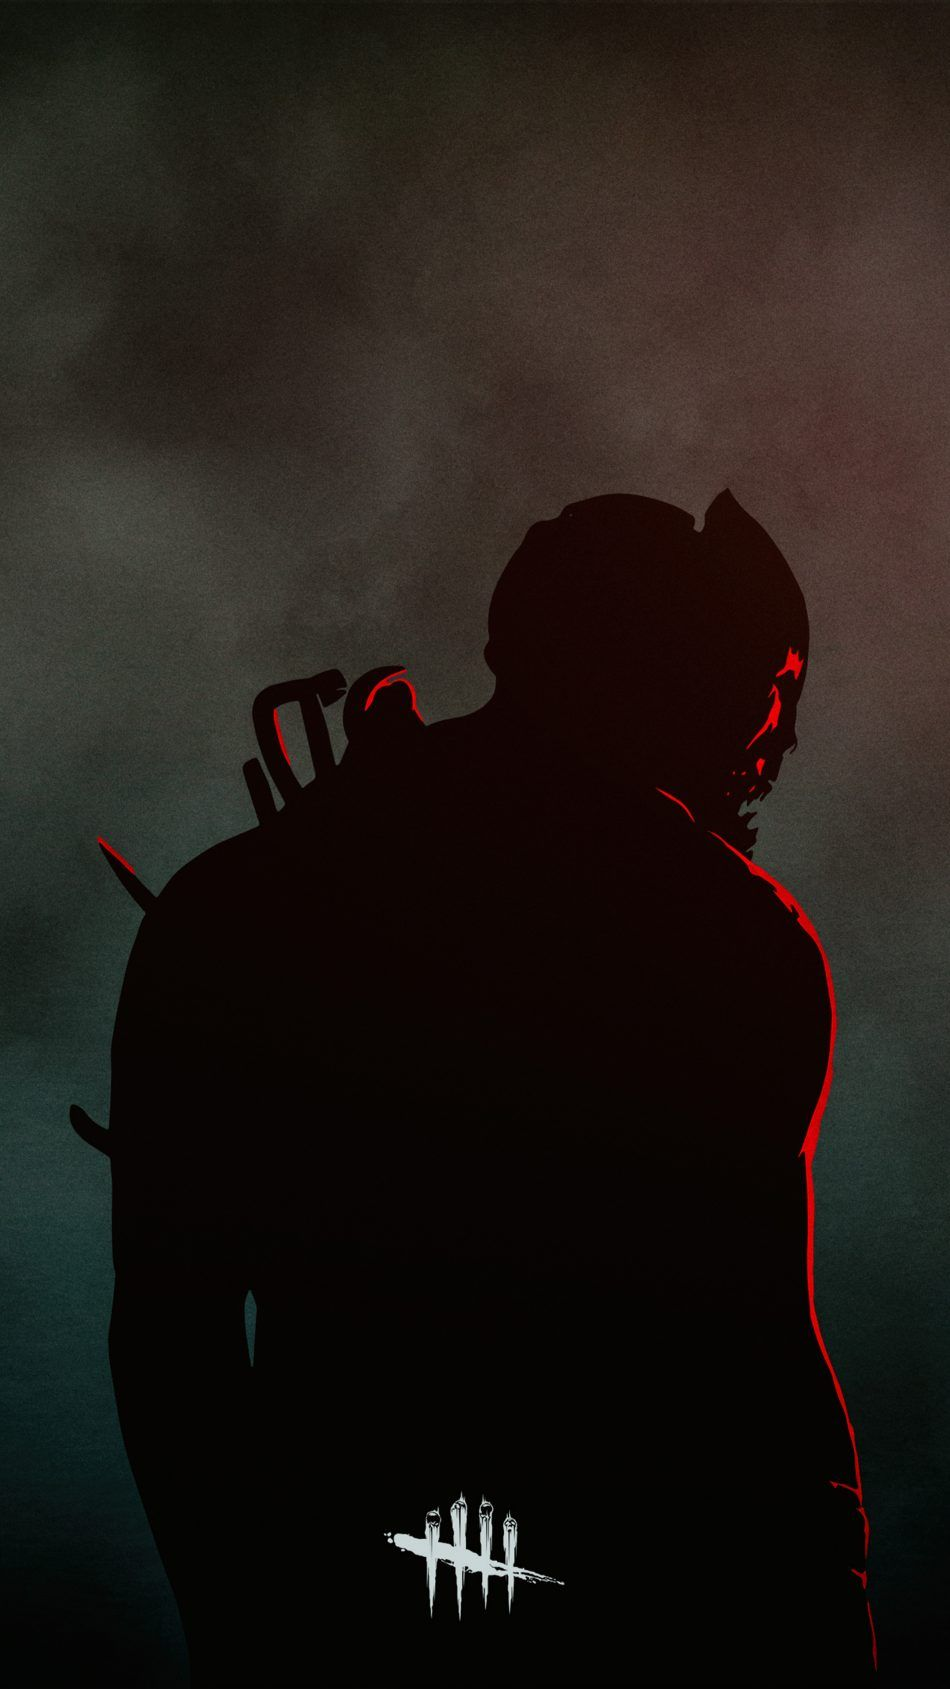 Trapper Dead By Daylight Iphone wallpaper, Mobile